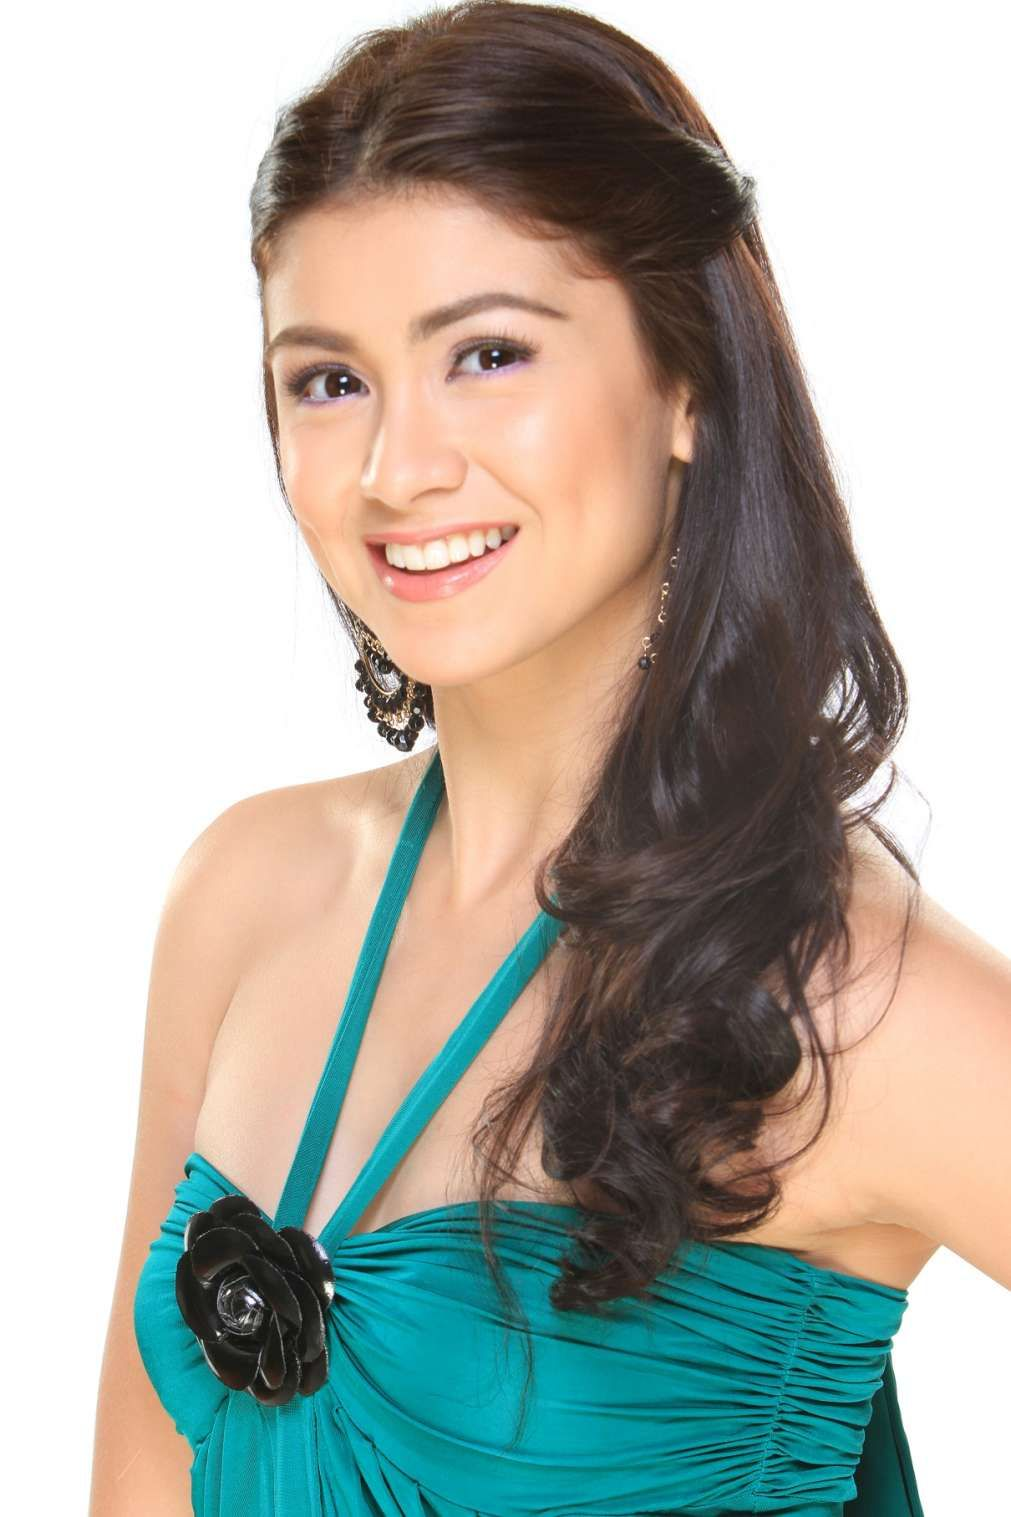 Pin lovi poe for tattoo pictures to pin on pinterest on pinterest - Carla Abellana